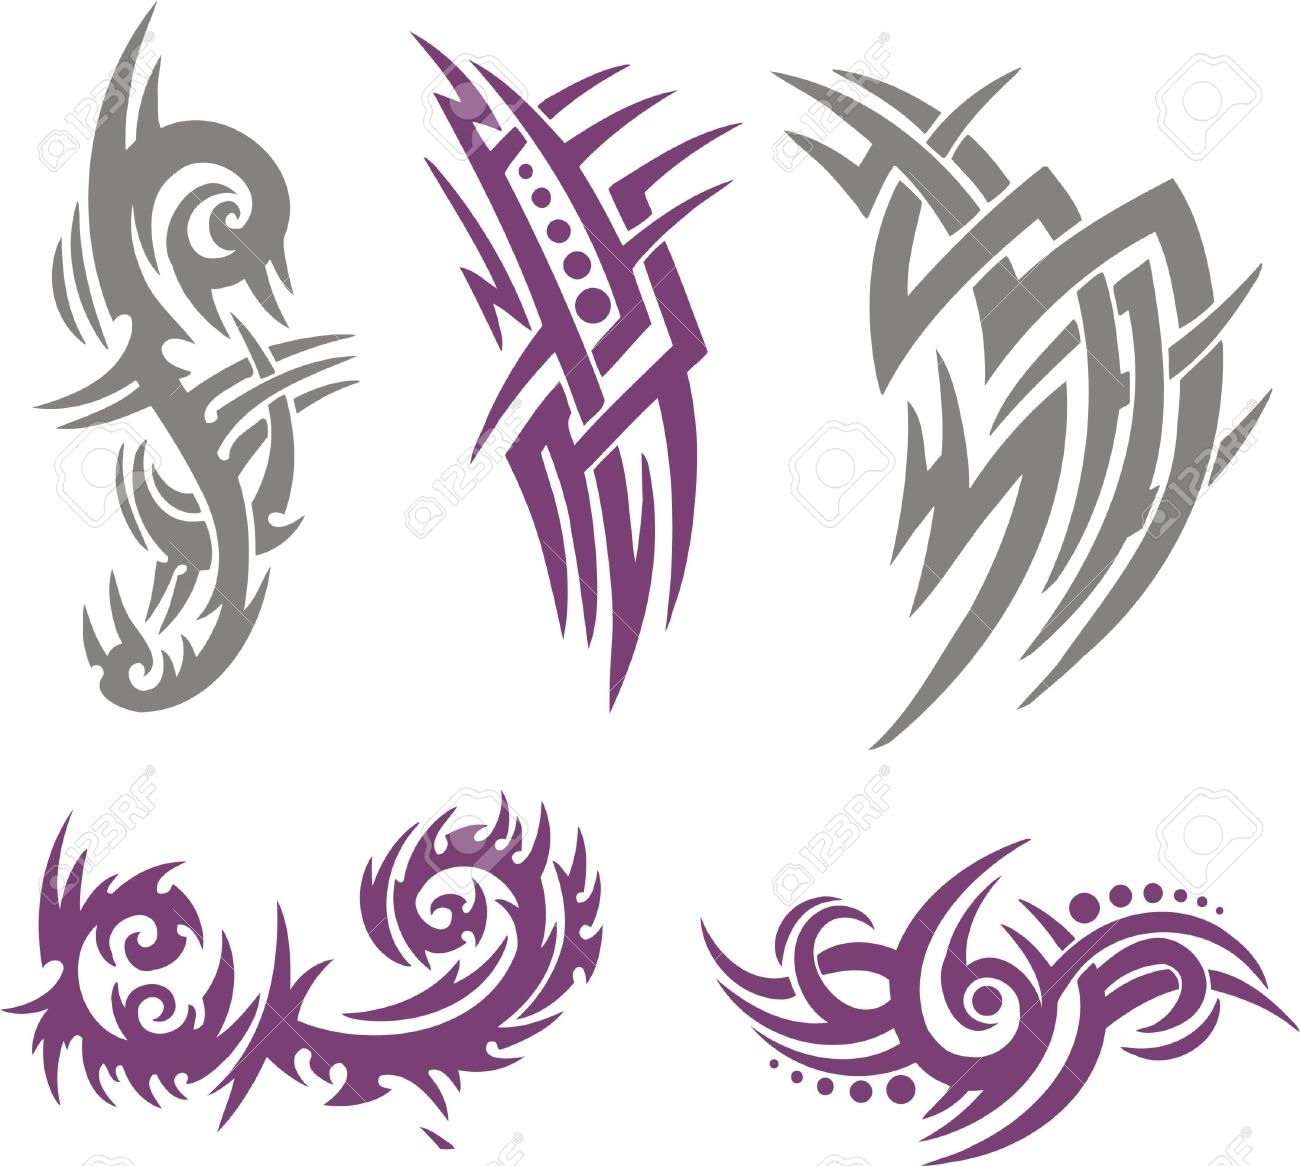 Tribal-Tattoos 8070180-Tribal-Tattoo-Set-Vector-Illustration-Collection-Stock-Vector-design